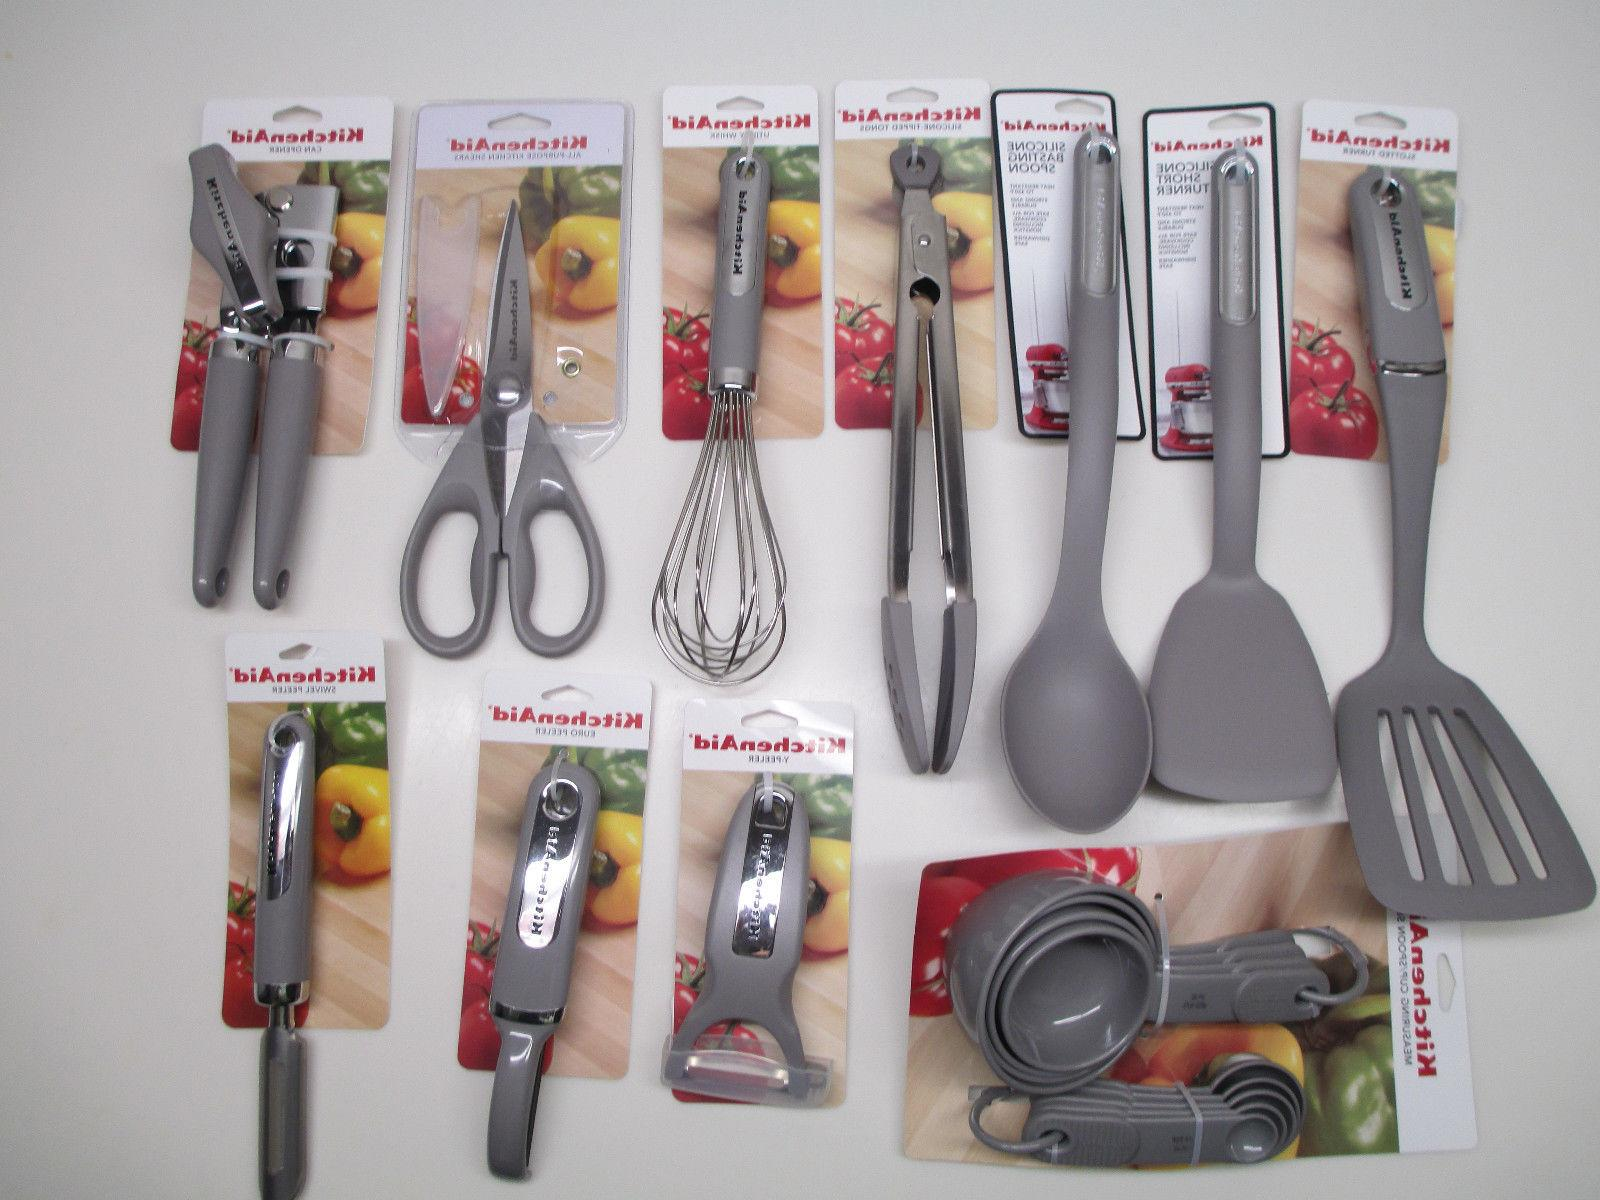 KitchenAid Storm Gray Kitchen utensils